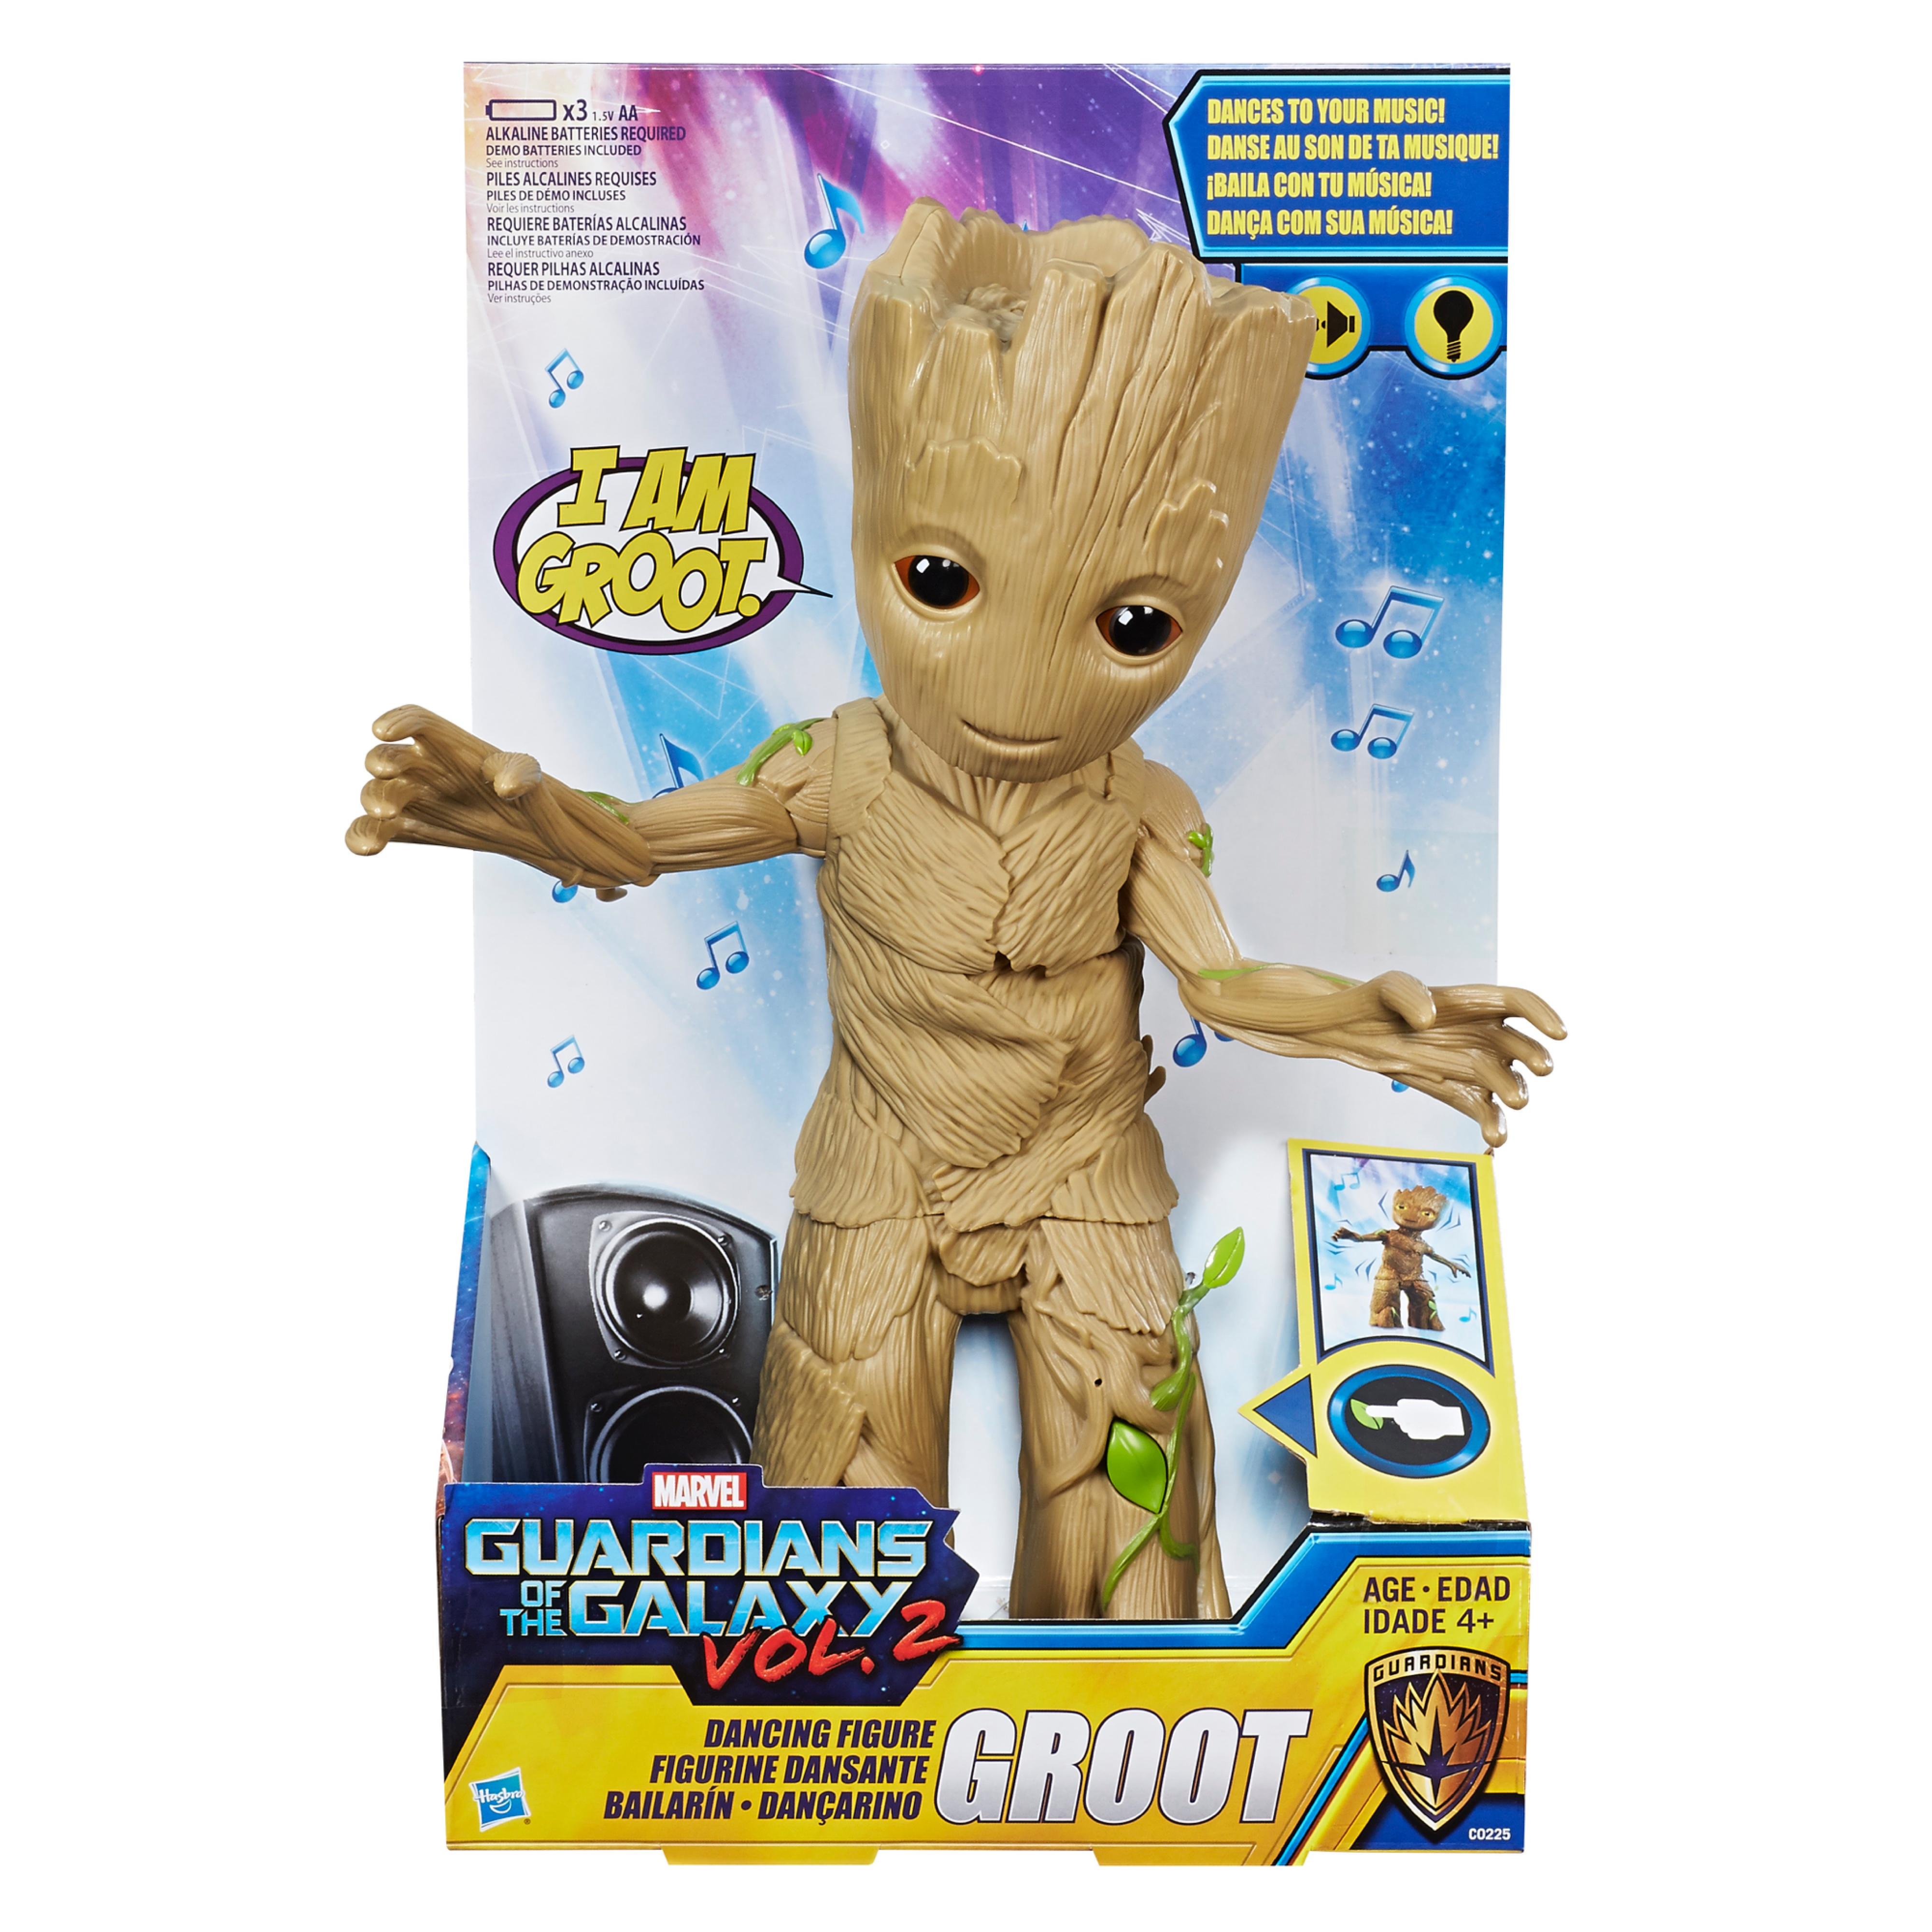 Cool Stuff Guardians Vol 2 Totoro Beauty And The Beast